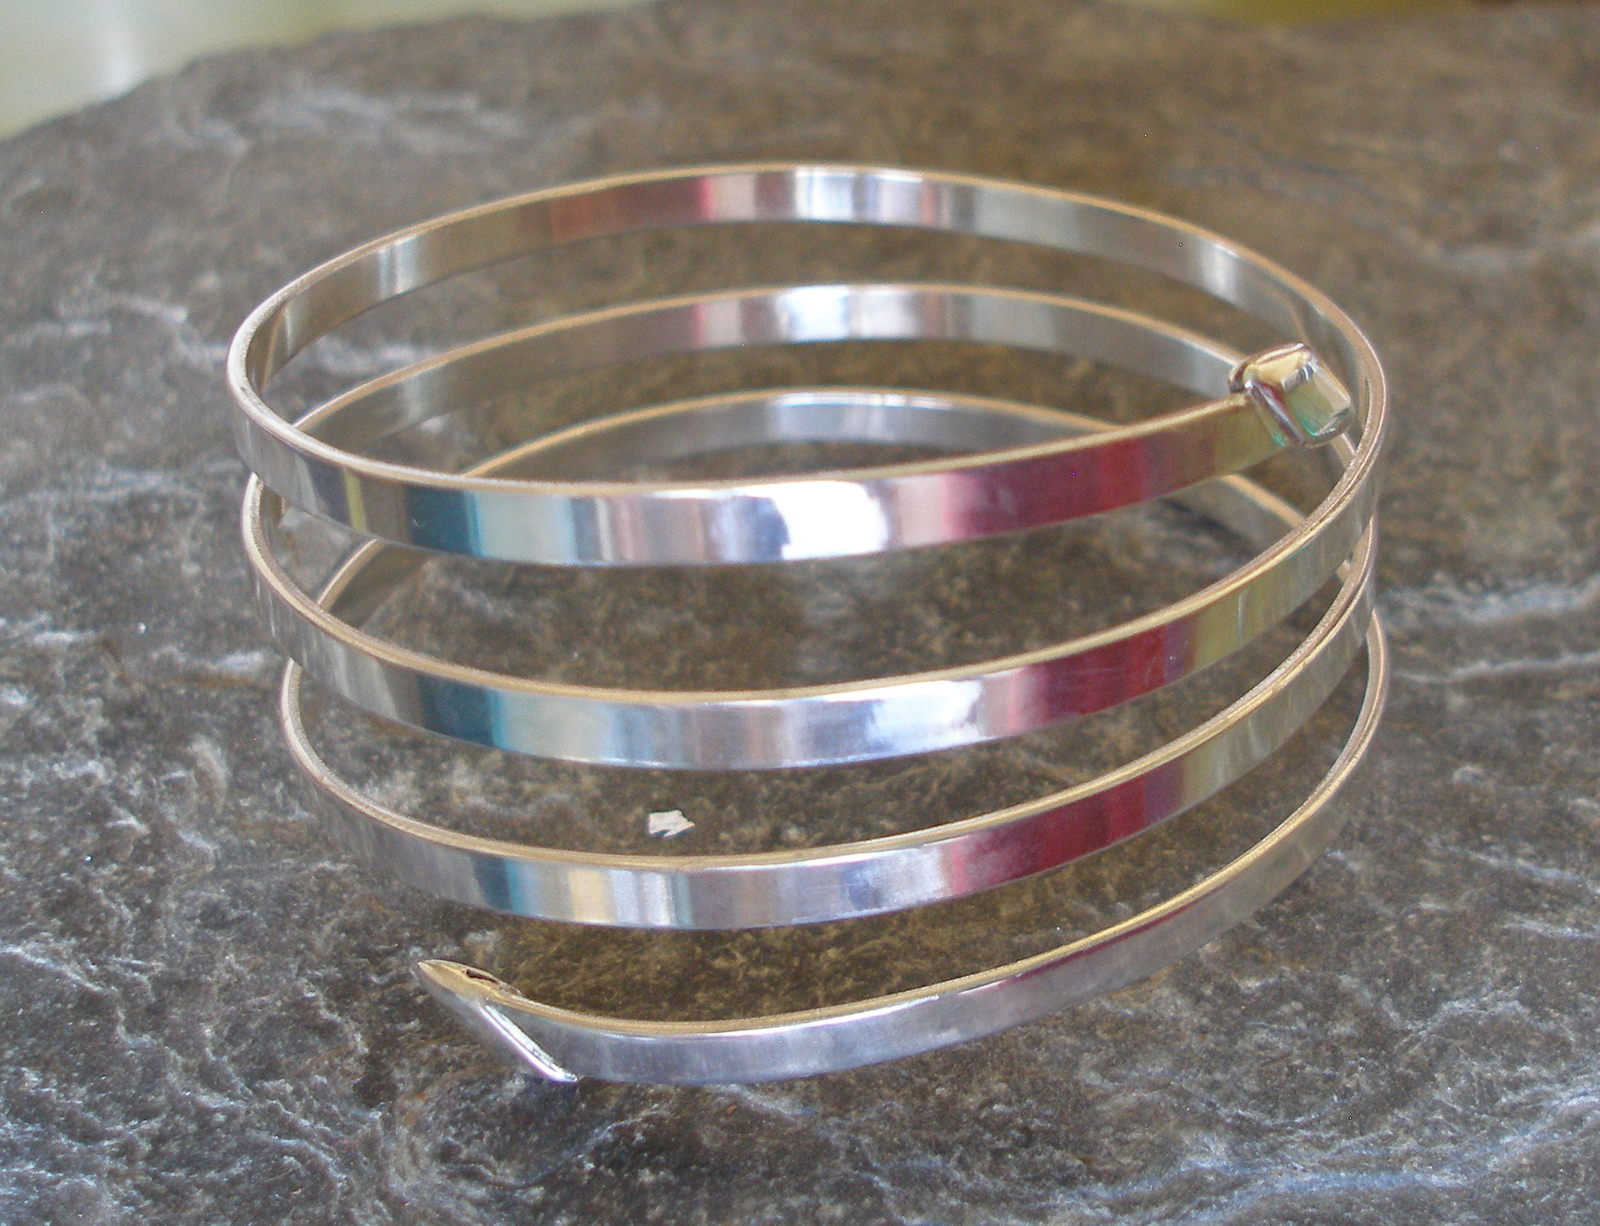 4 strand thick polished silver bangle cuff